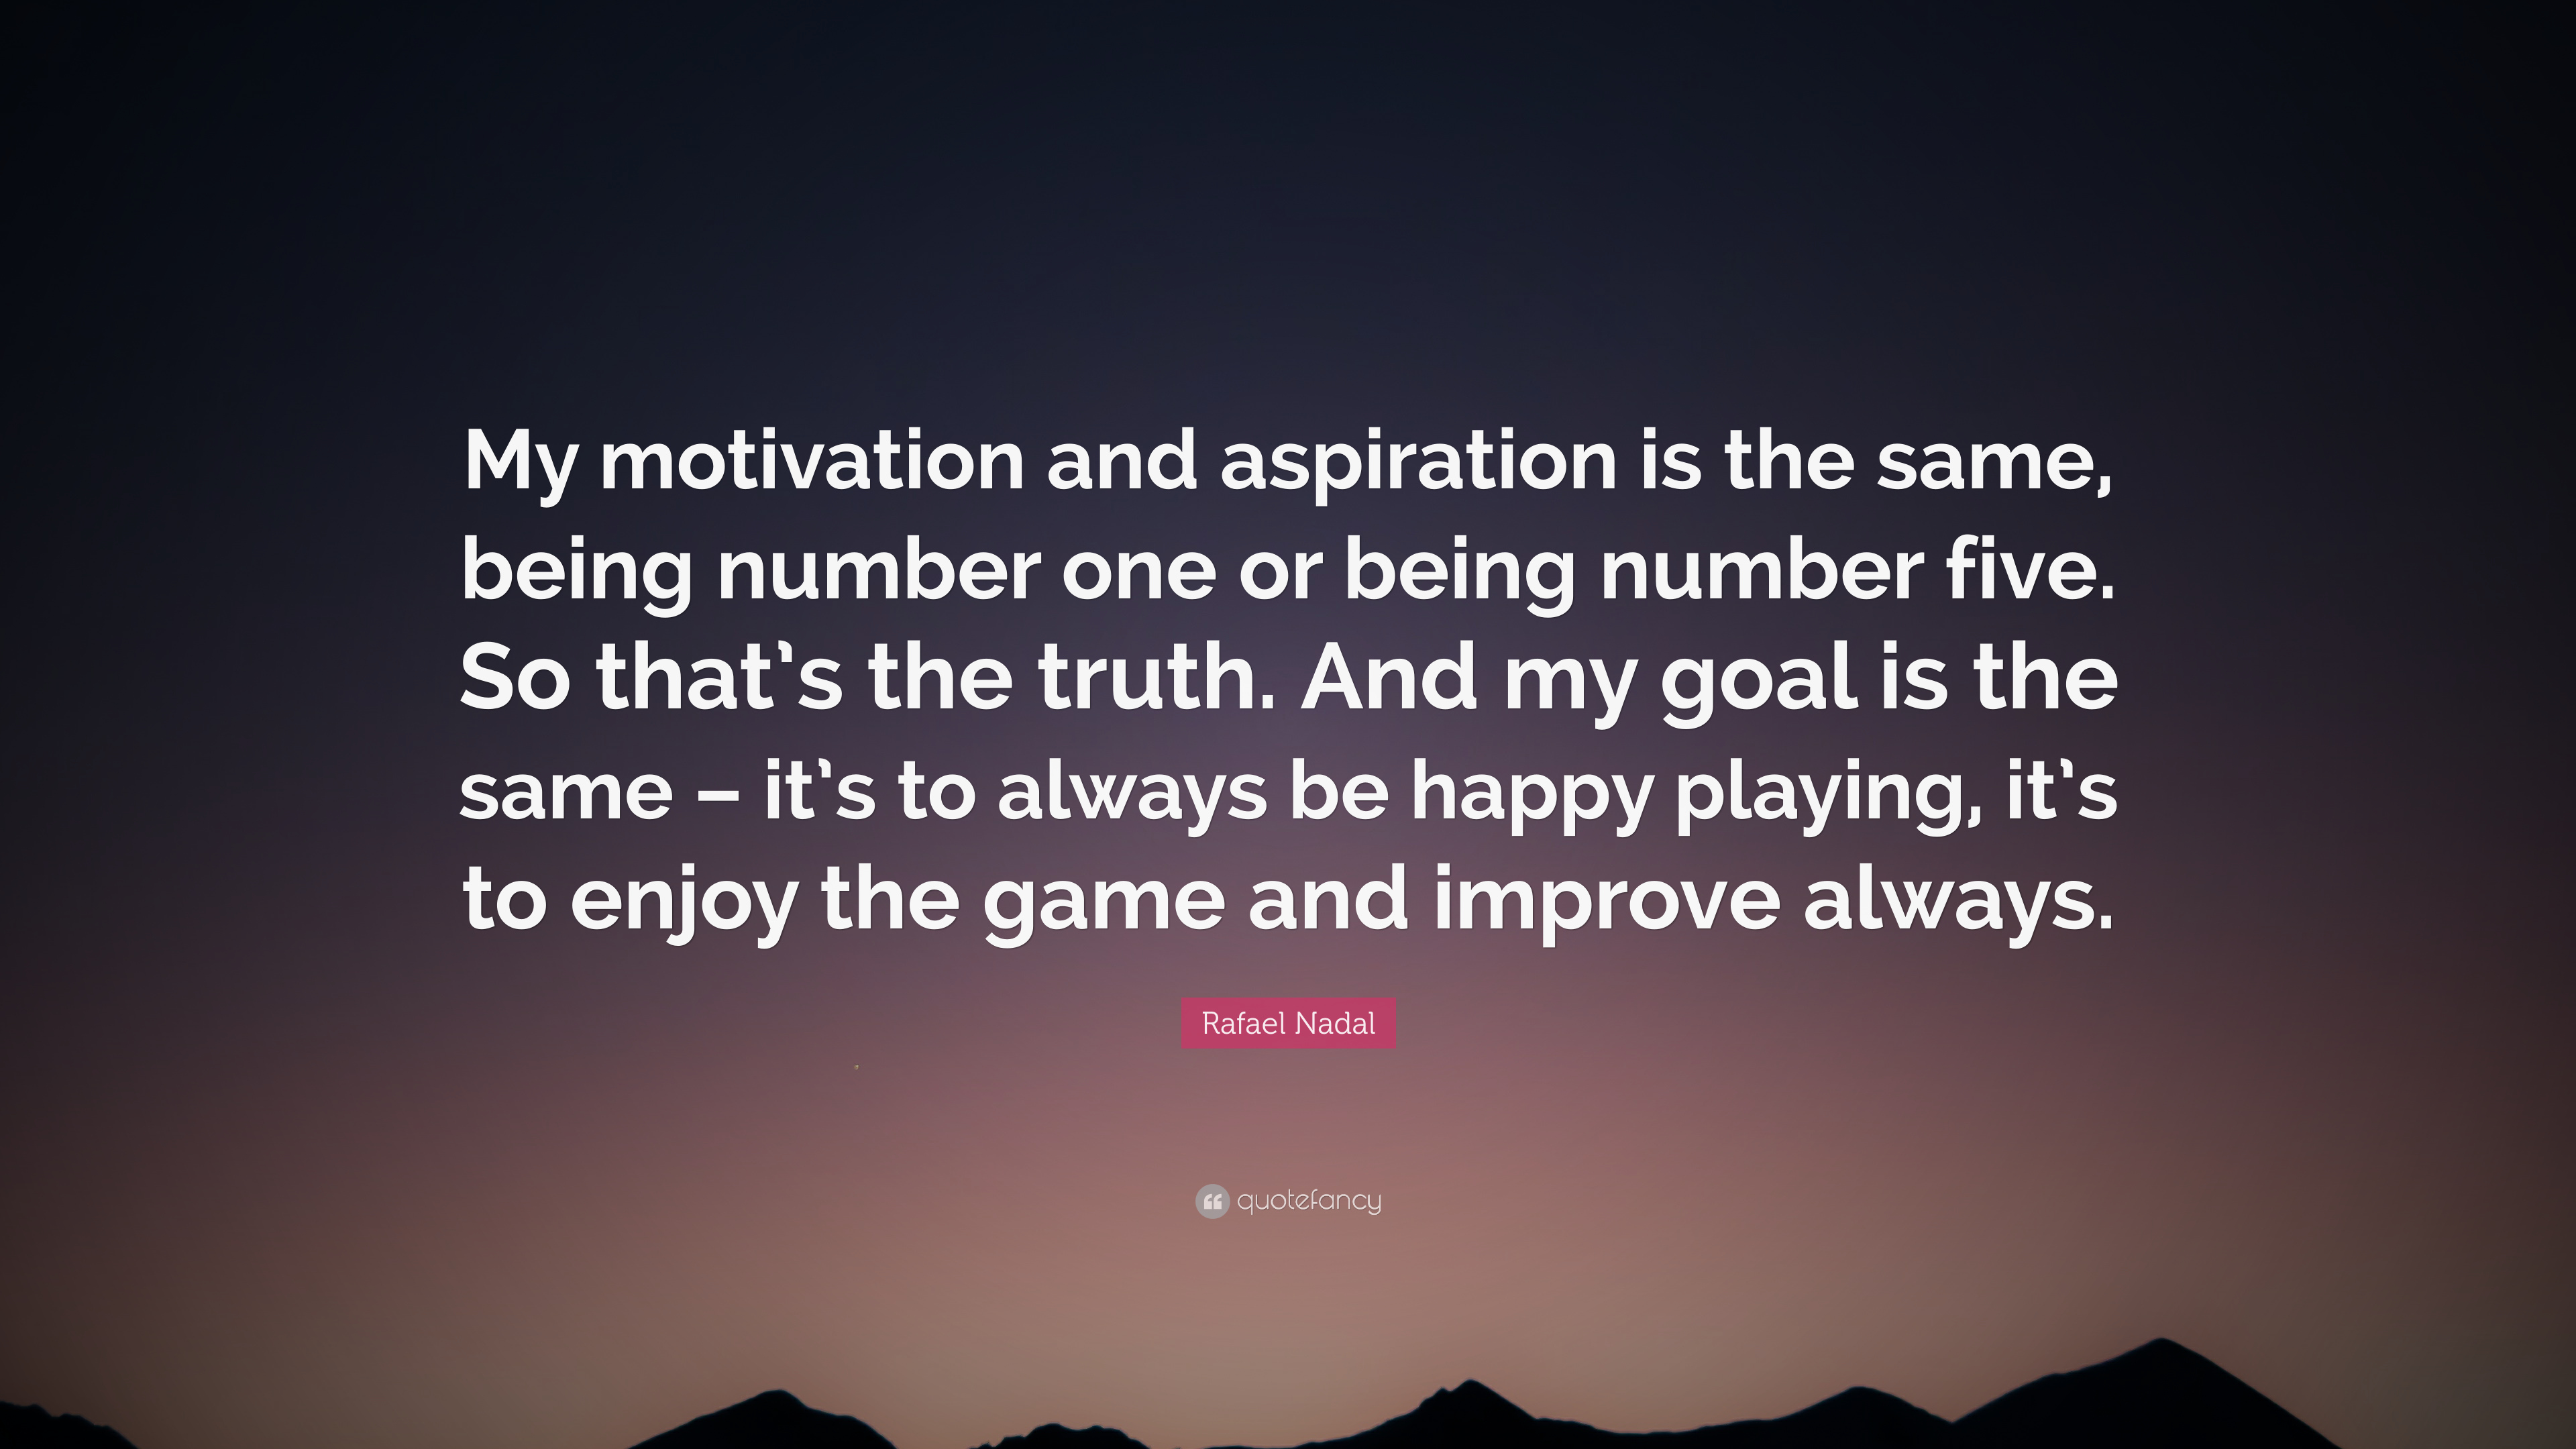 Rafael Nadal Quote My Motivation And Aspiration Is The Same Being Number One Or Being Number Five So That S The Truth And My Goal Is The 7 Wallpapers Quotefancy